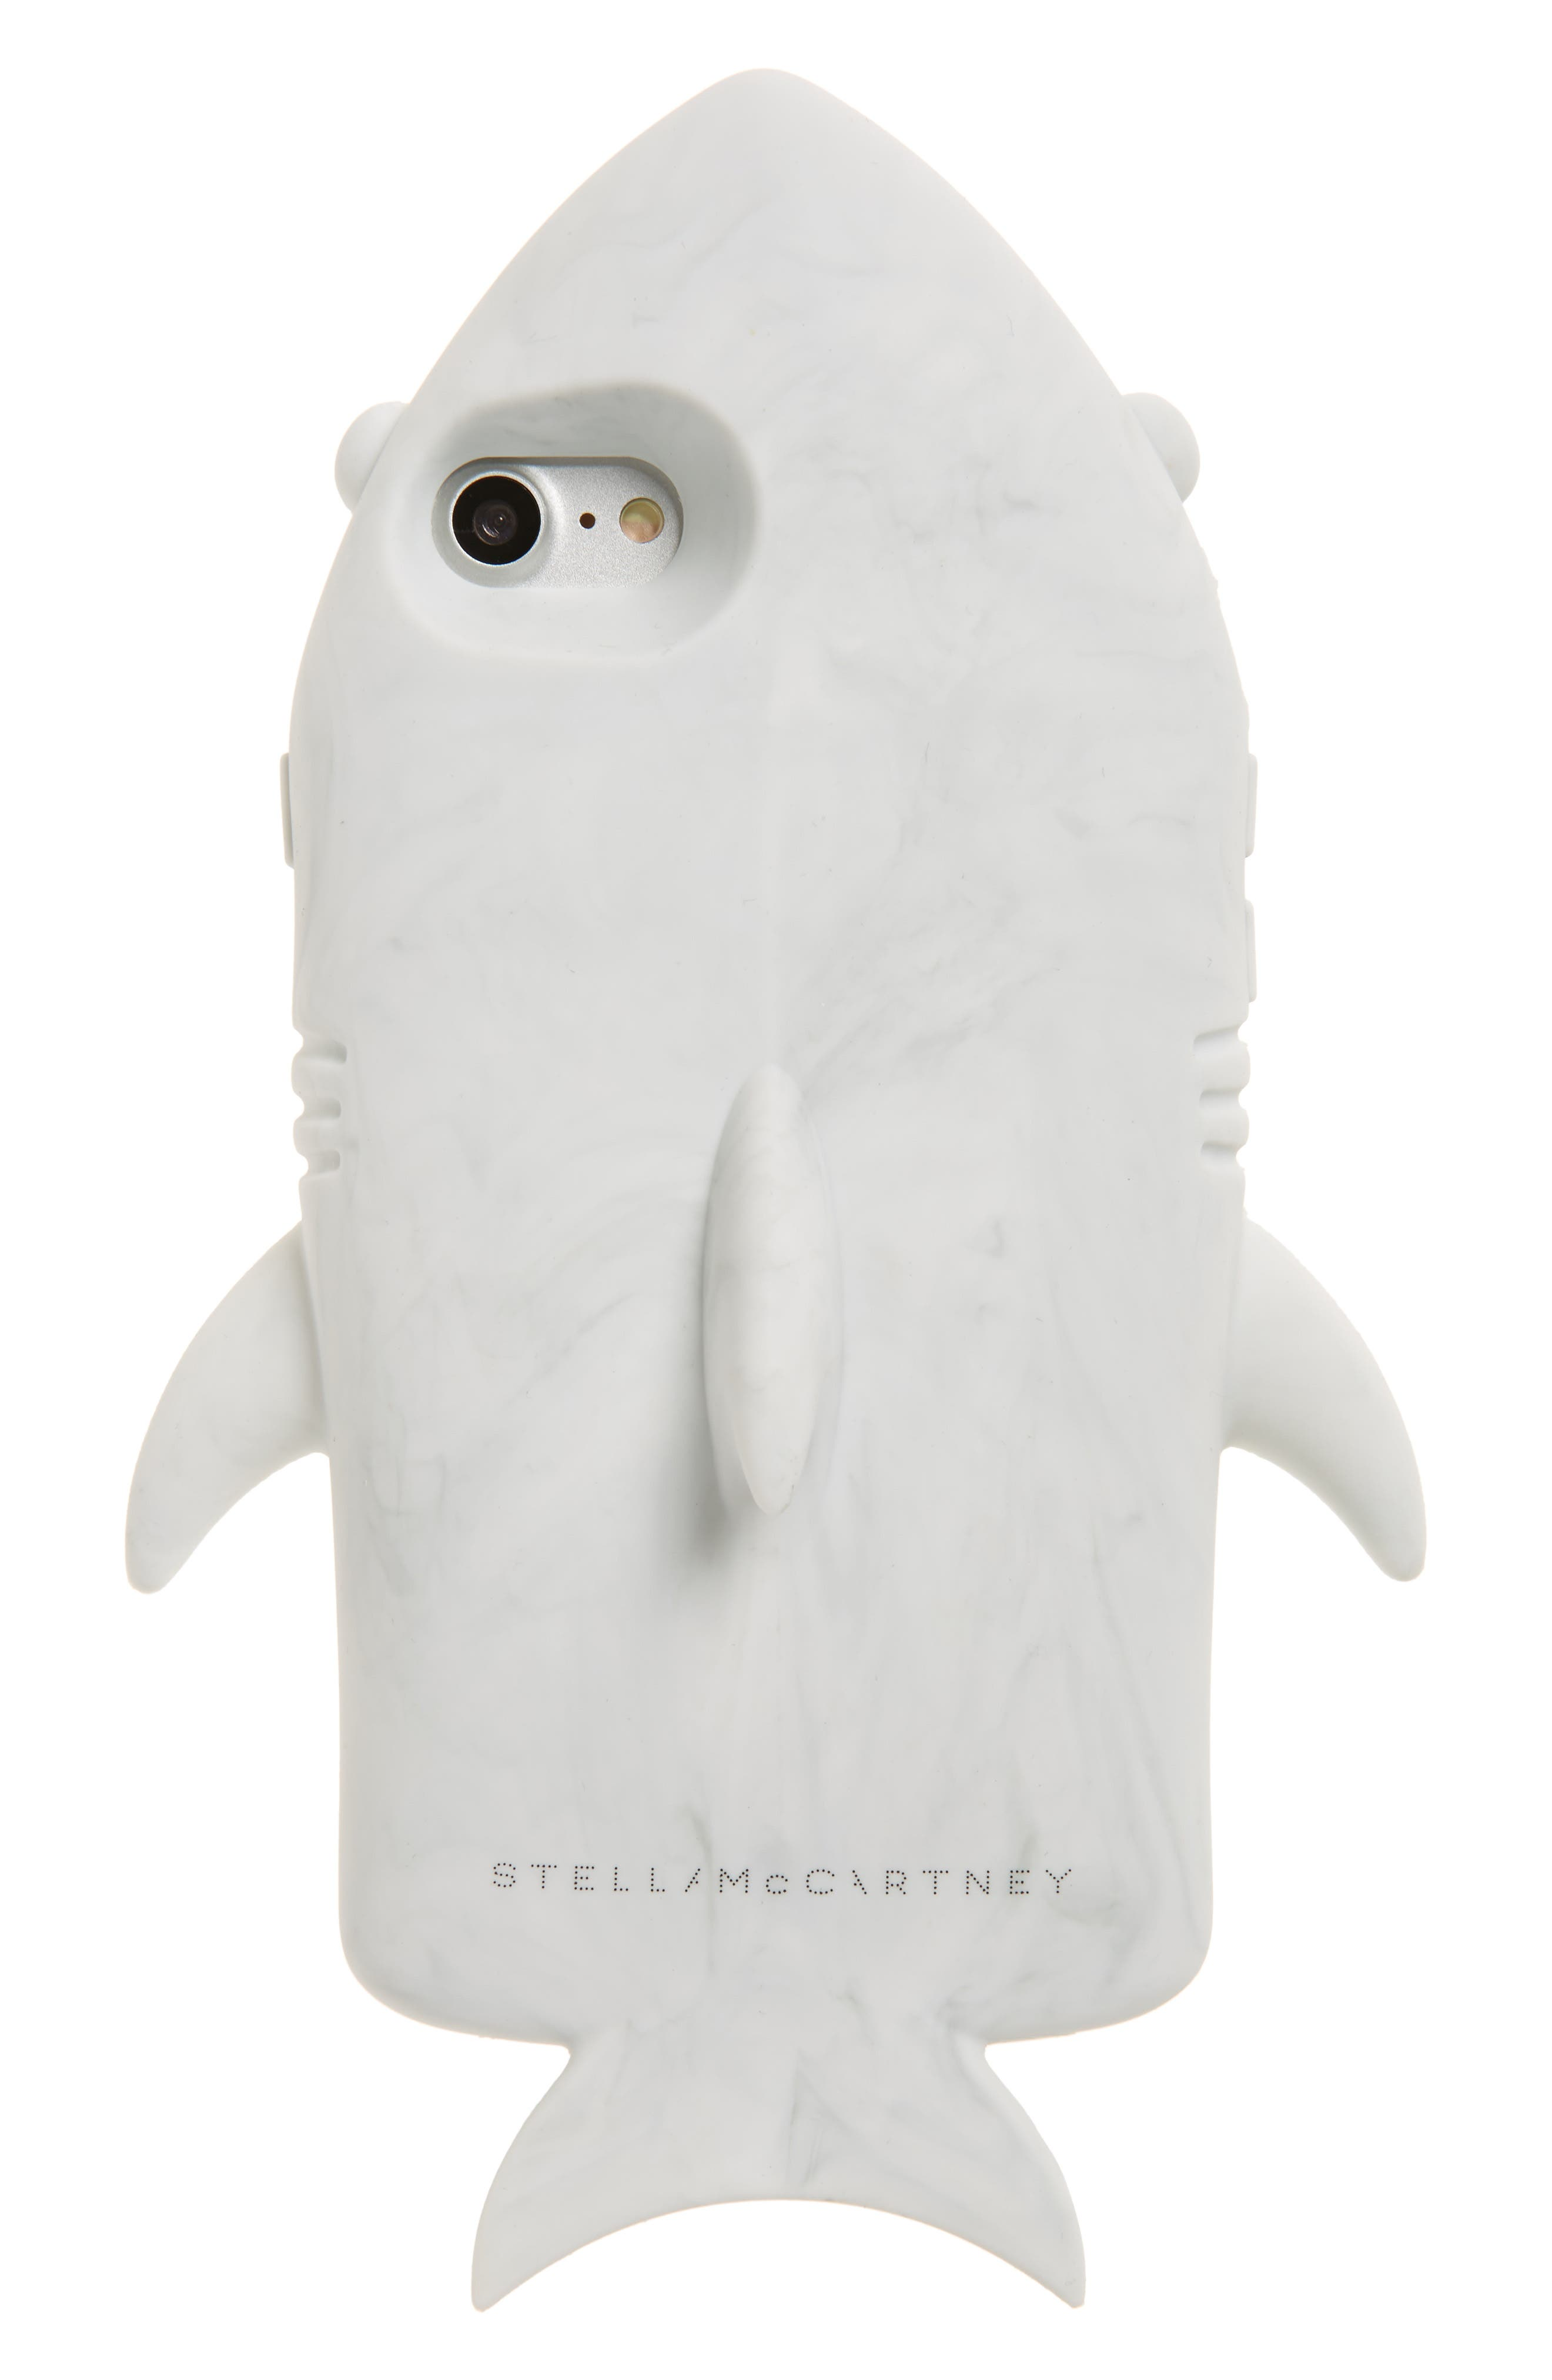 Stella McCartney iPhone 7 Case